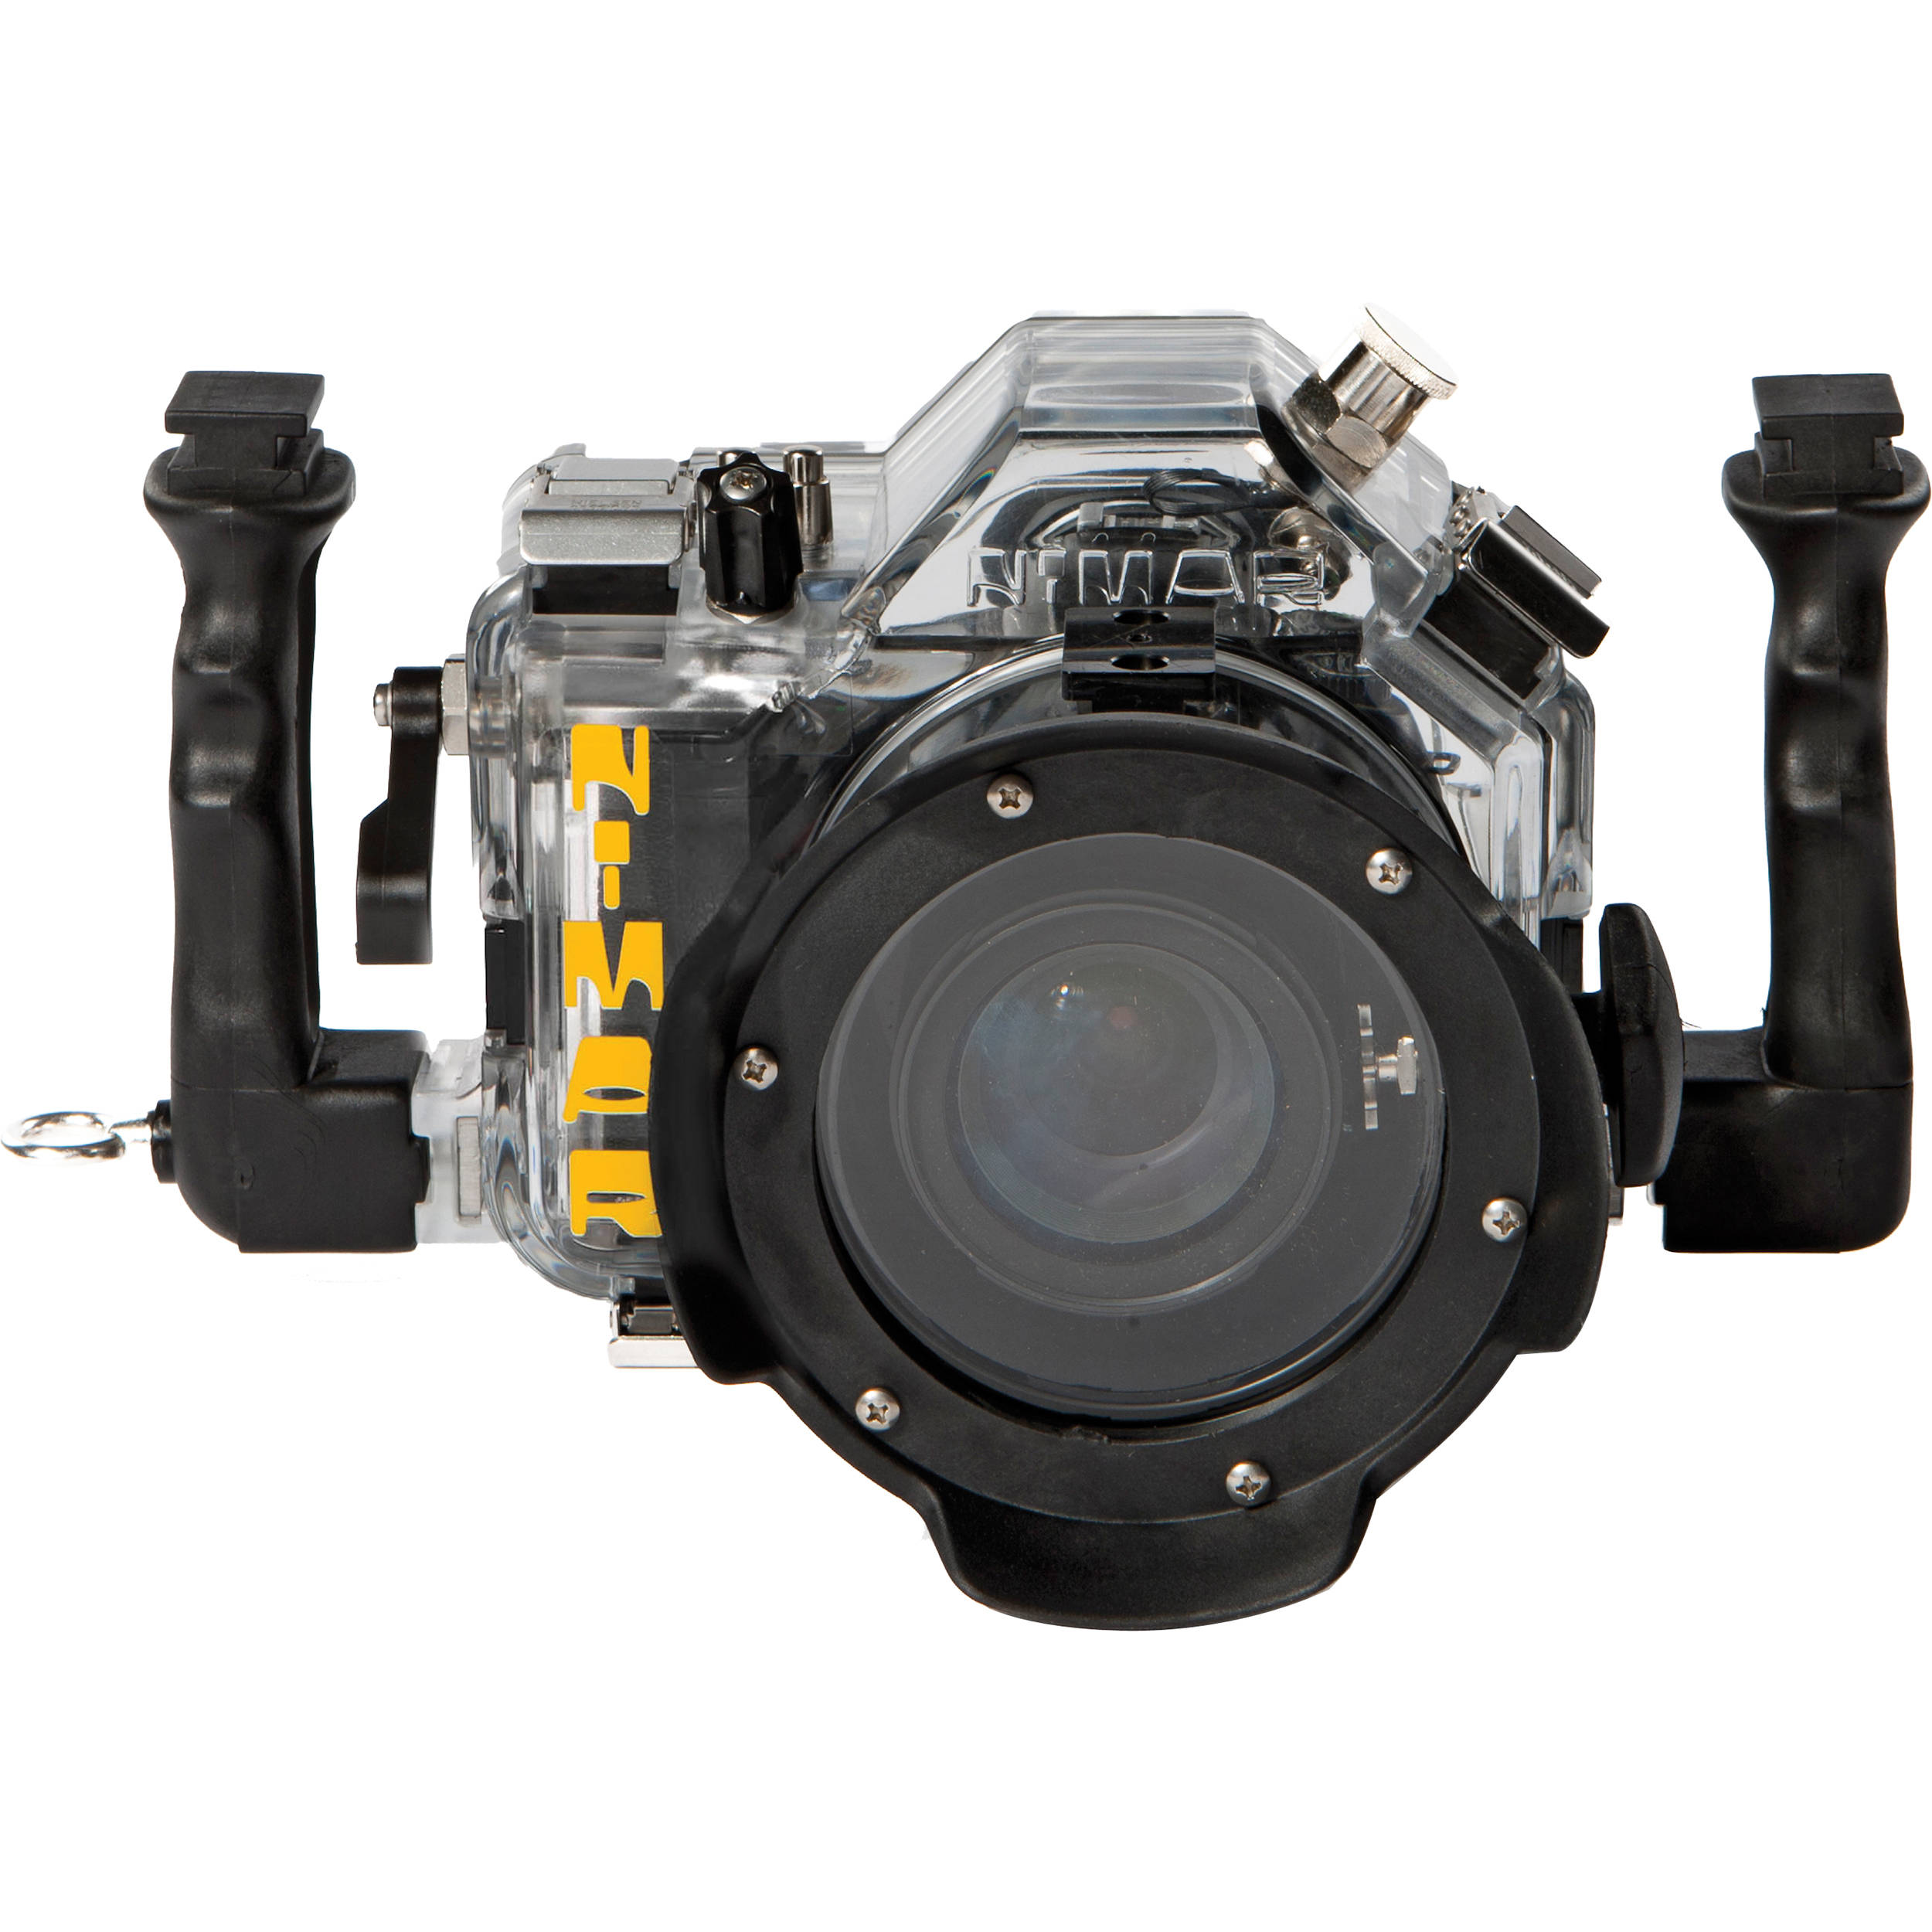 Camera Nikon D40 Dslr Camera Price nimar underwater housing for nikon d40 d40x and d60 ni303d40zm shown with optional accessories